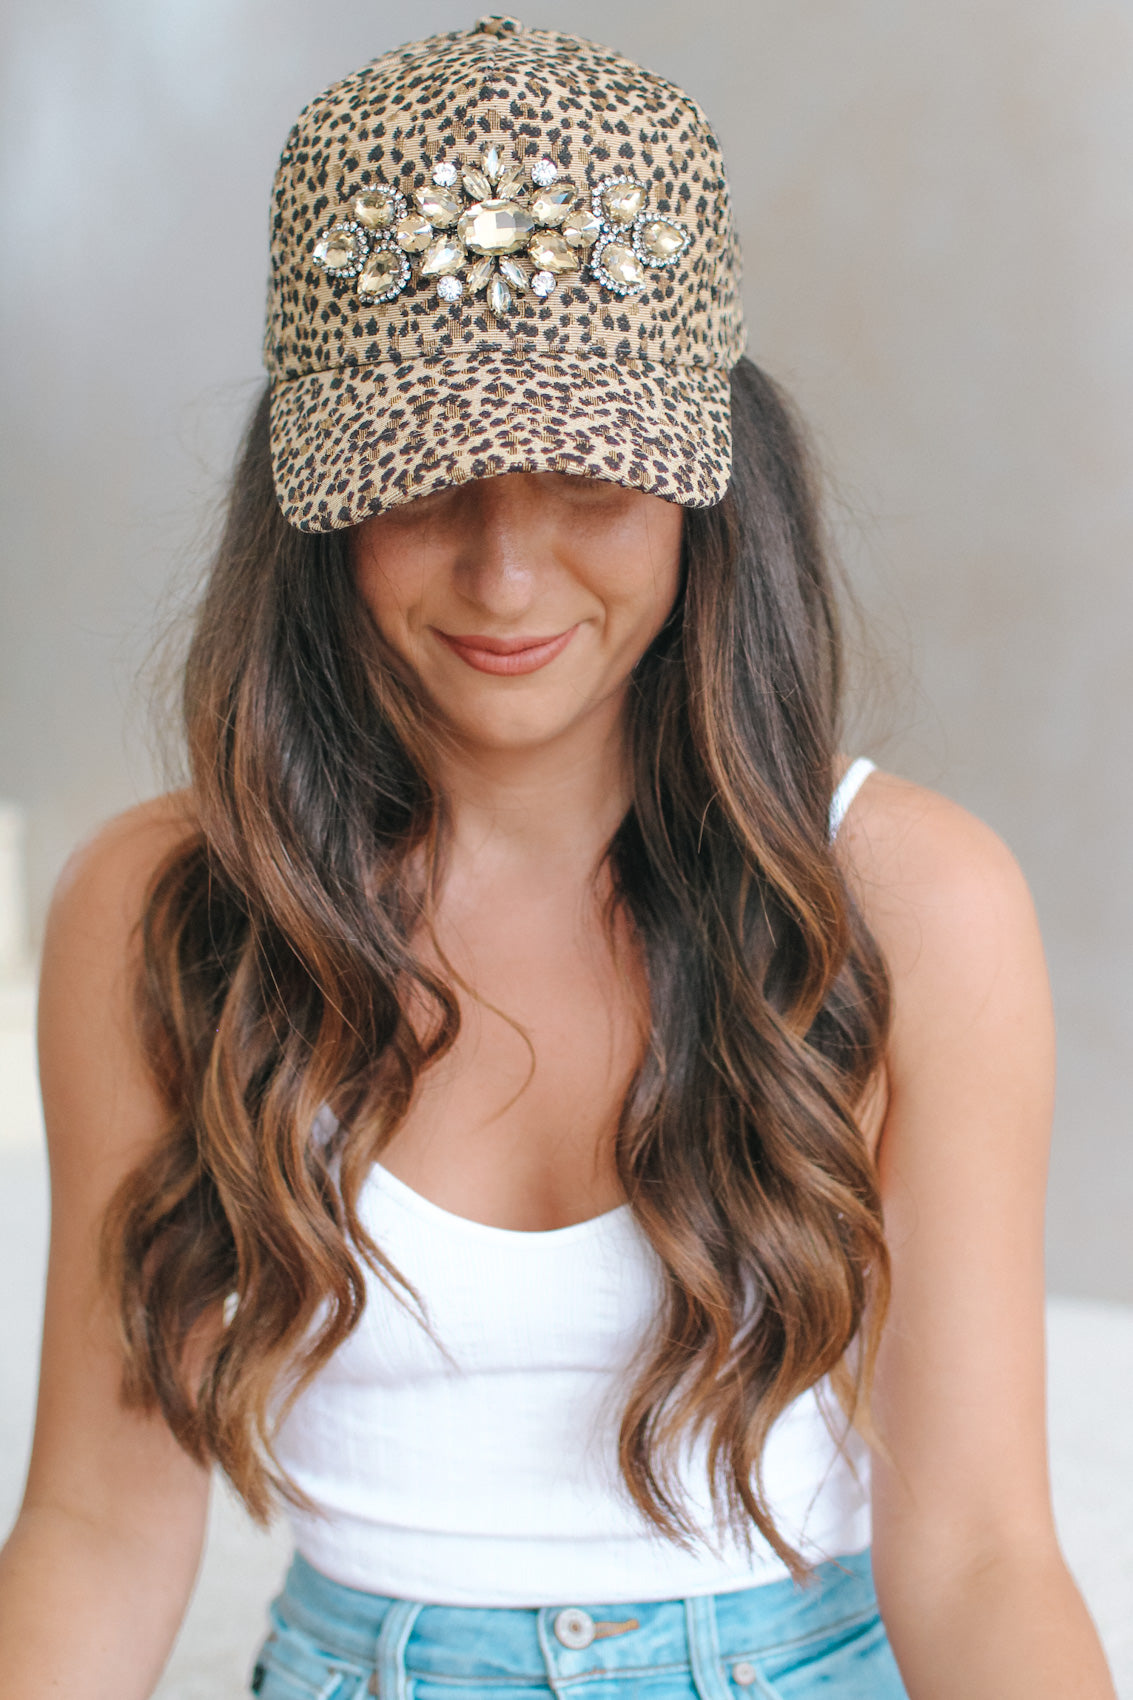 Leopard Baseball Hat with Teardrop Flowers